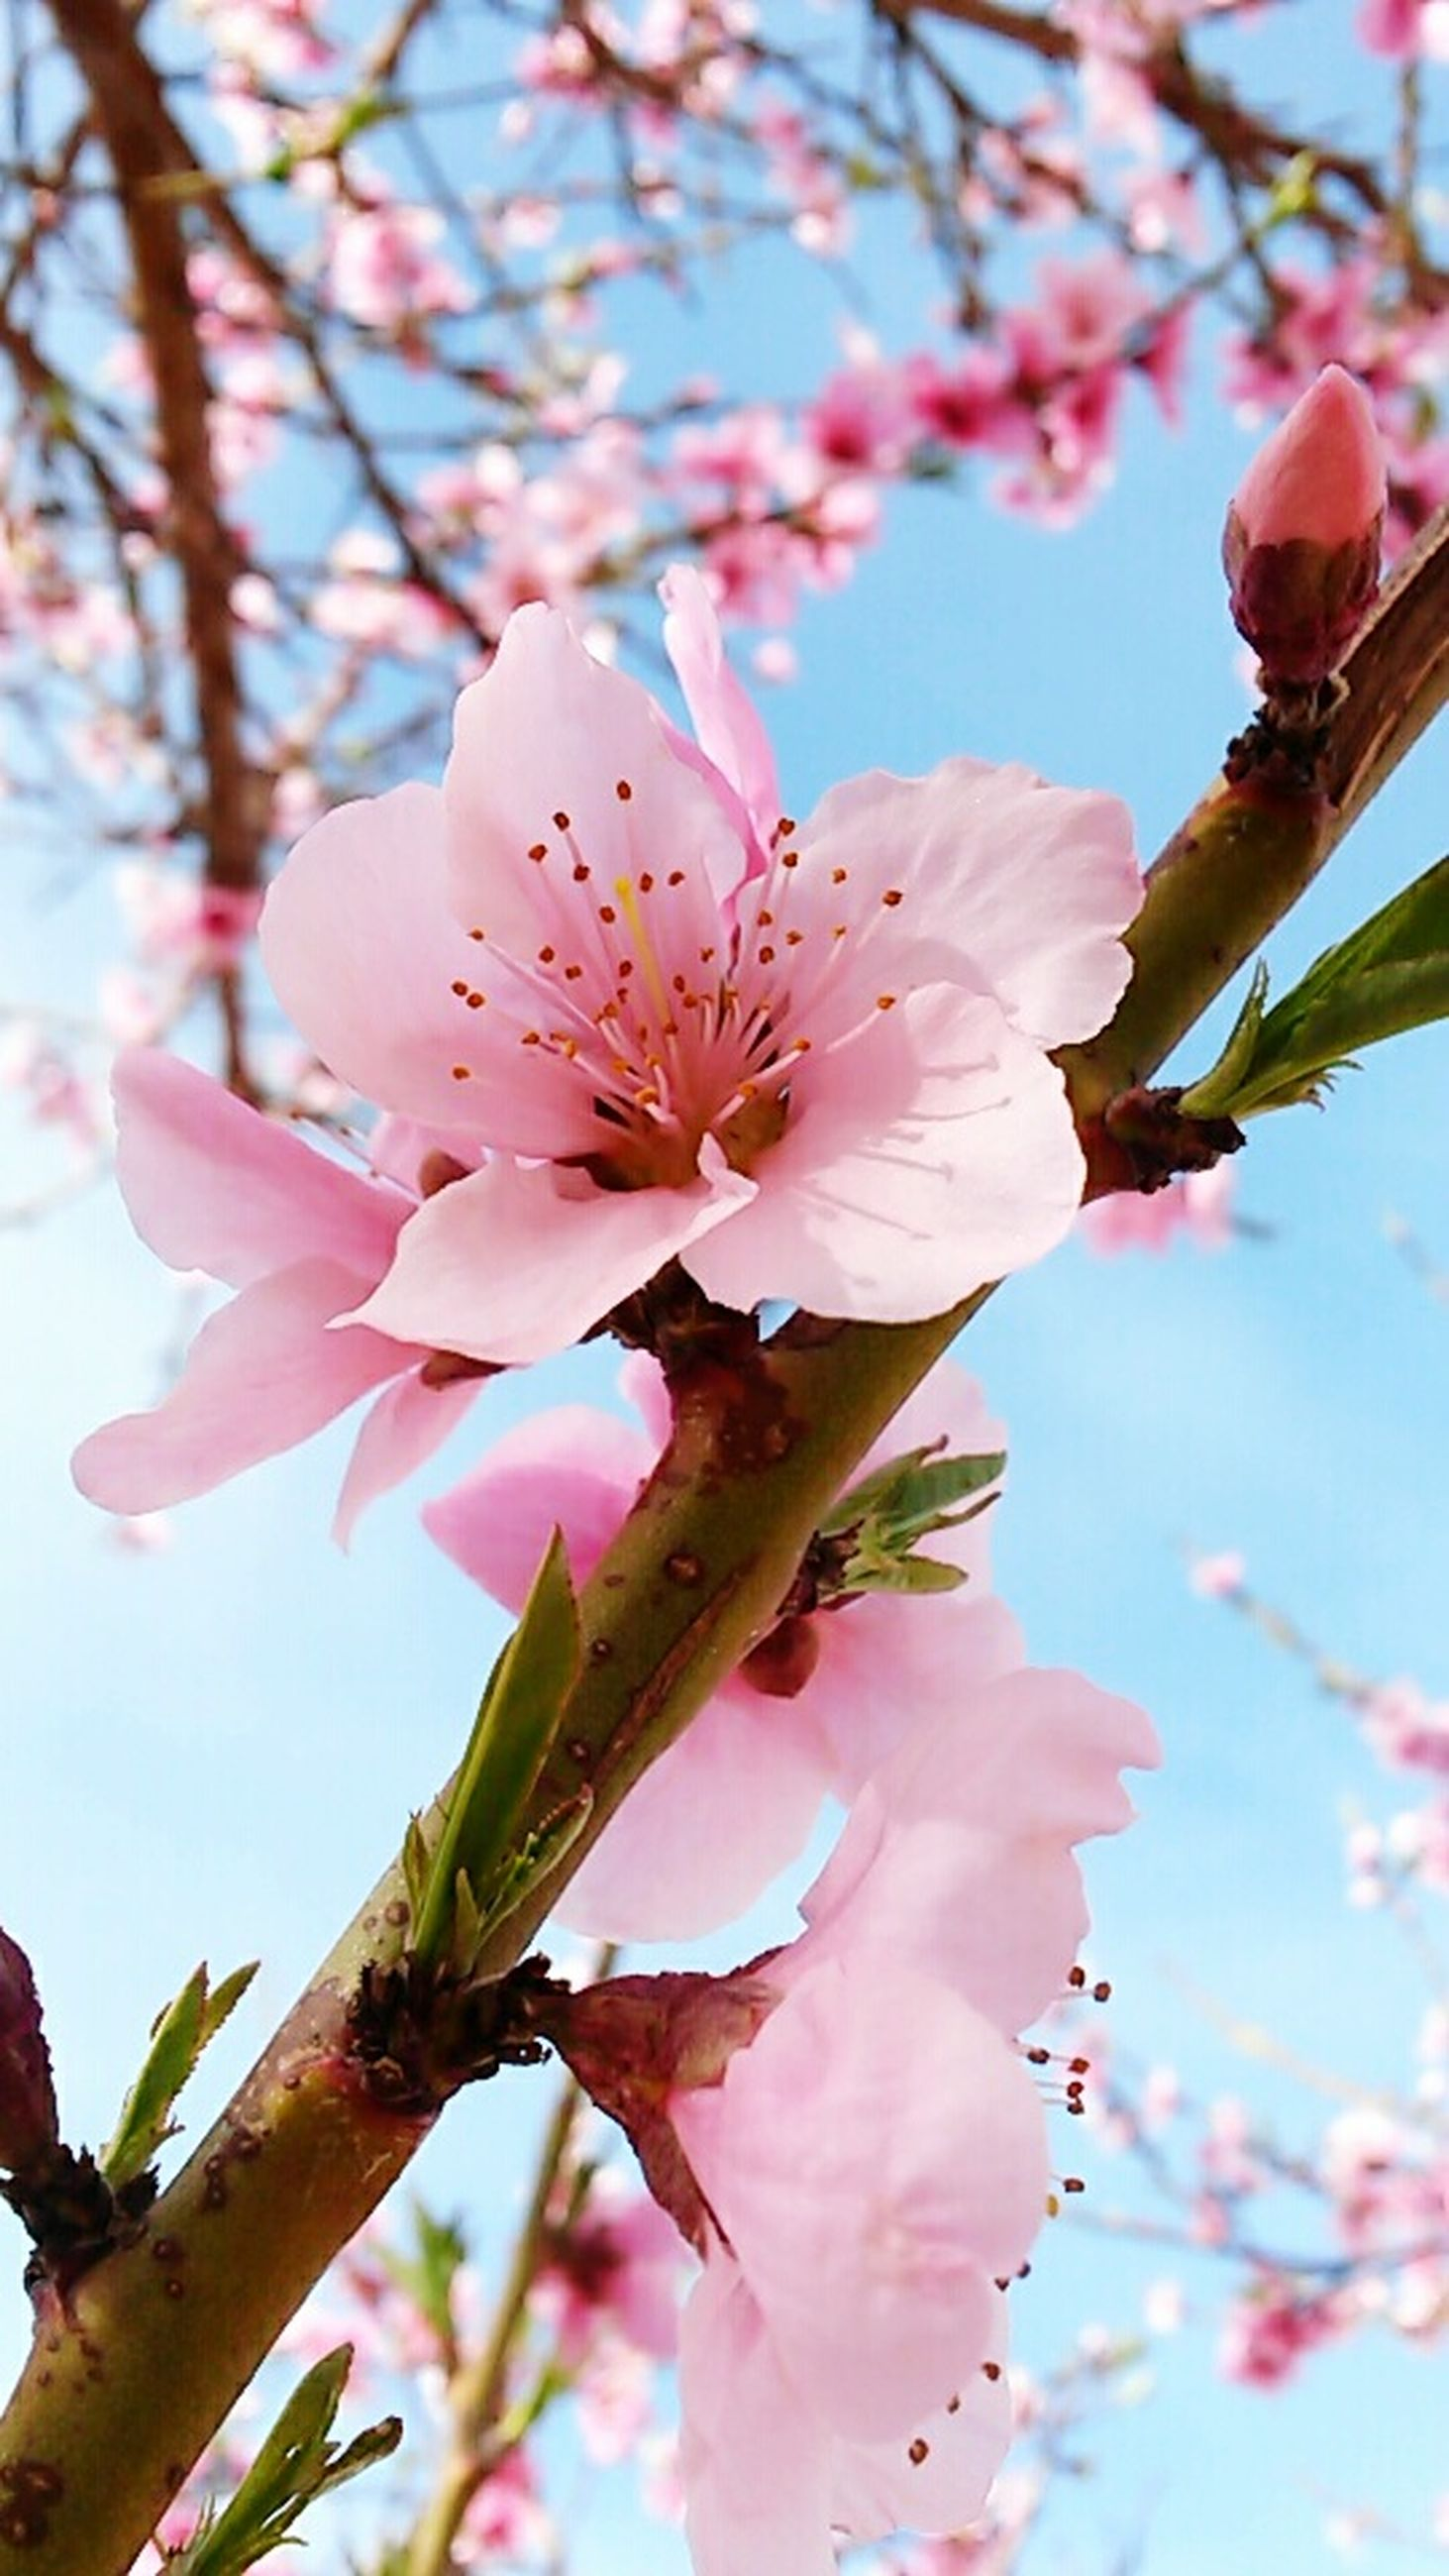 flower, freshness, low angle view, branch, growth, fragility, tree, beauty in nature, petal, pink color, blossom, nature, close-up, sky, focus on foreground, in bloom, cherry blossom, twig, flower head, springtime